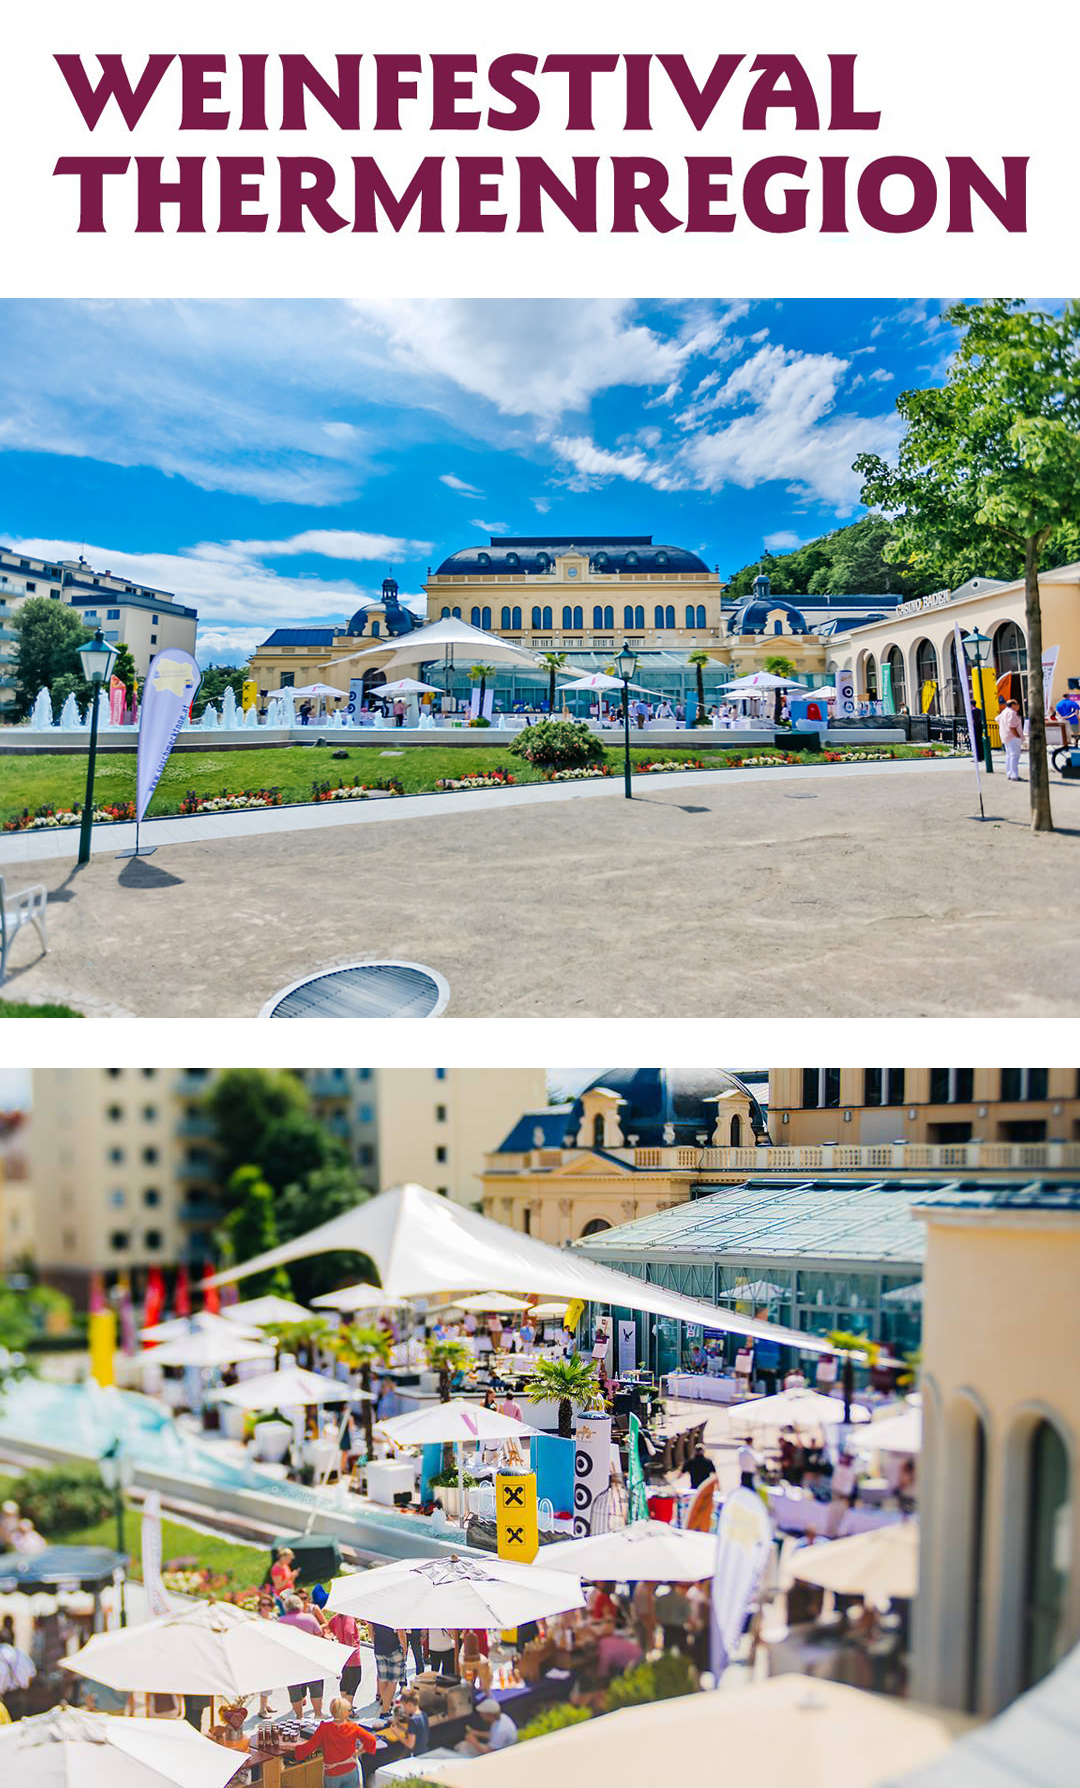 Weinfestival Collage Fotocredit David Faber